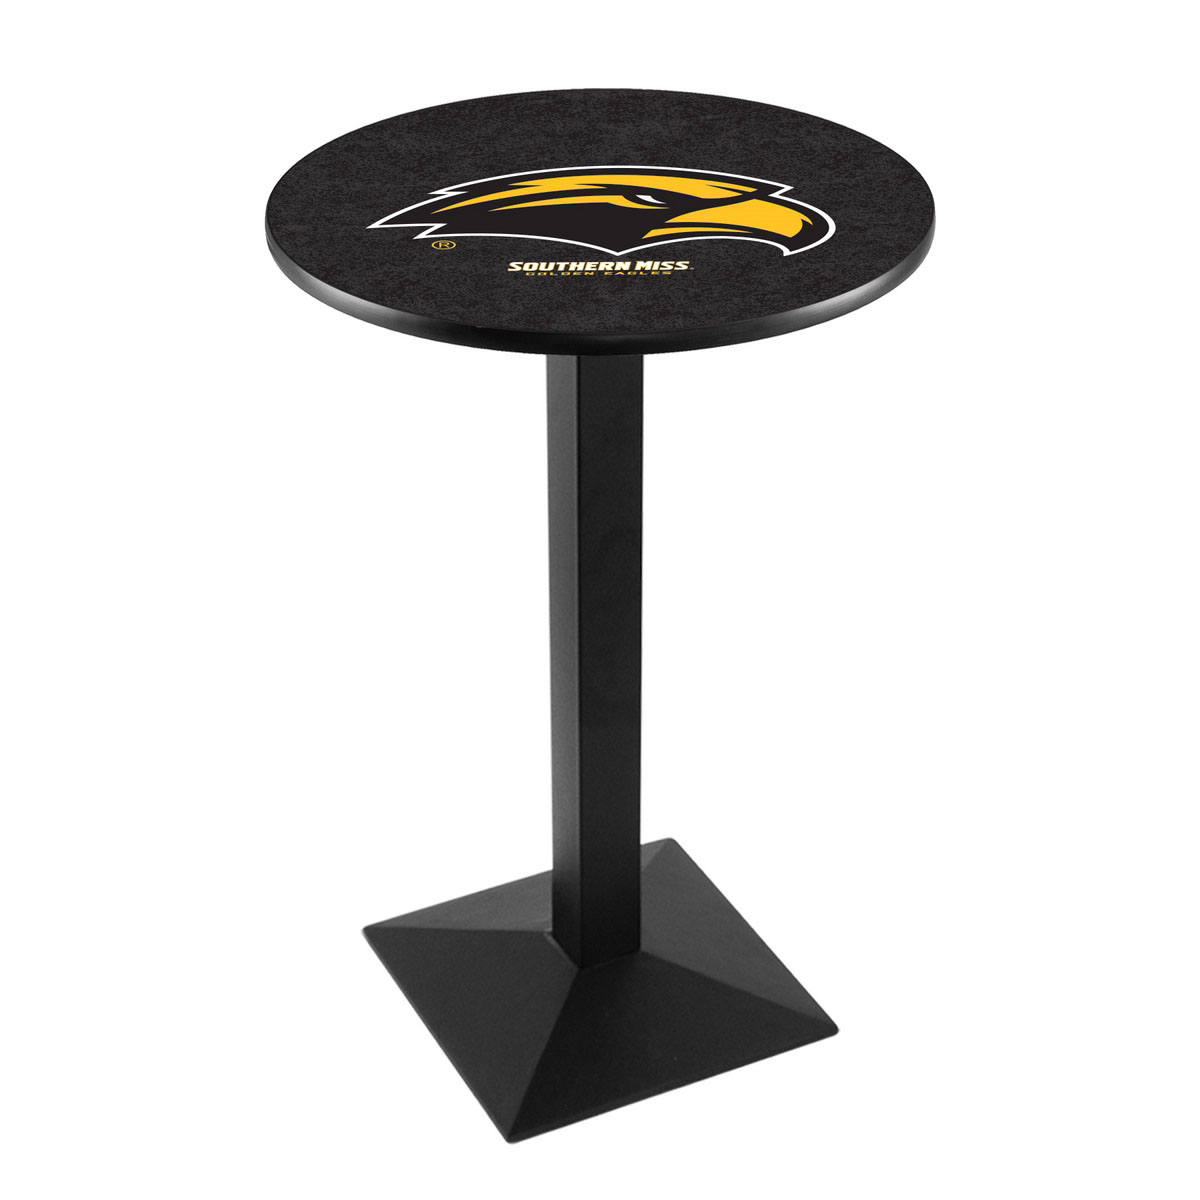 User friendly University Southern Mississippi Logo Pub Bar Table Square Stand Product Photo